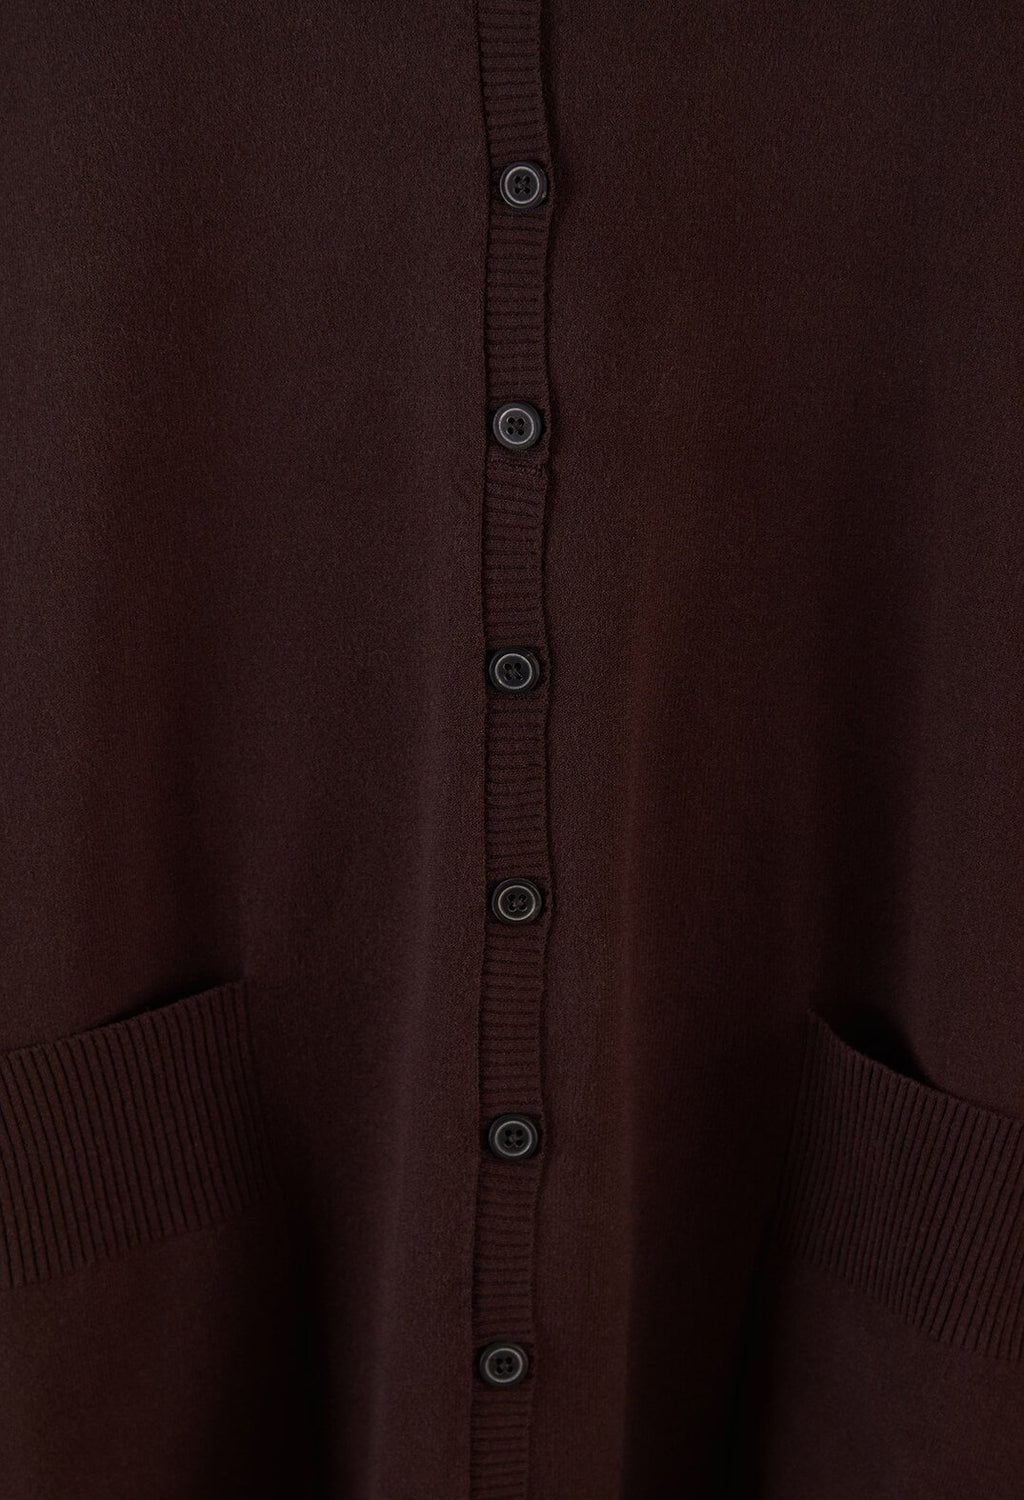 Longline in Dark Brown